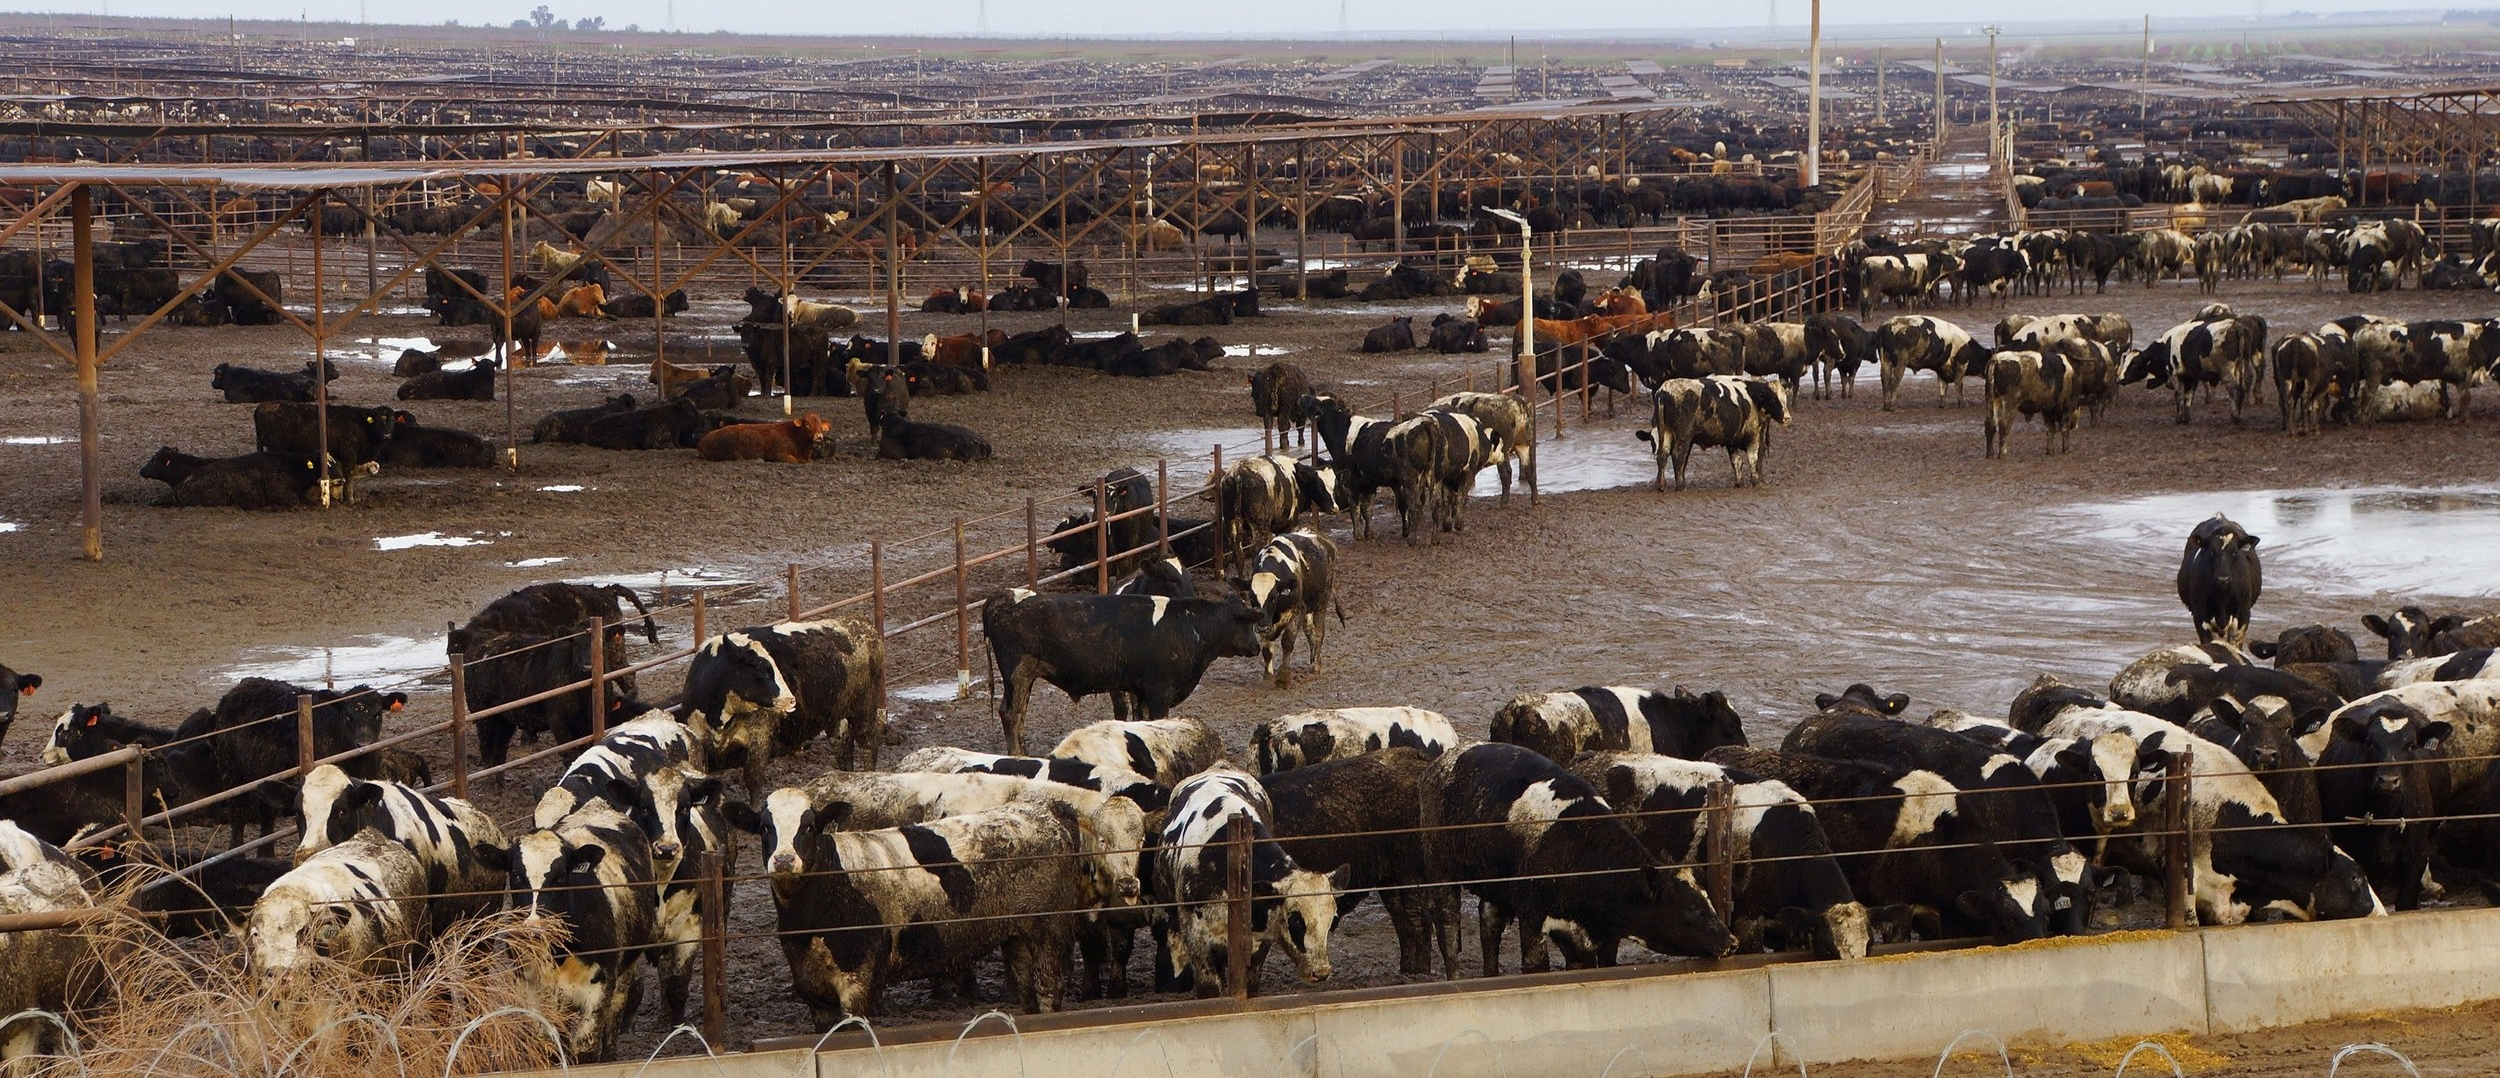 Intense Animal Agriculture and Antibiotic use  Dairy cows in a feedlot operation. Australia doesn't have many of them, but they do exist, and may not look exactly like this. The feed can consist of large amounts of grains which may have been sprayed with agrochemicals. These may damage the rumen (the terrain inside the cow) because the active ingredients may  act like an antibiotic  killing off the gut microbes. The cow's gut is a fermentation vat powered by microbes. When these are killed it leads to sickness inside the animal. Without gut bacteria mammals become ill and malnourished. They become mineral deficient, mentally depressed, and pathogenic bacteria overgrow. These harmful microbes shed in the faeces, ending up in manure lagoons, rivers and waterways ( example ). This milk has to be pasteurised (sterilised) because it is not safe to consume. Pathogen outbreaks are created by unsustainable farming operations that create diseased animals. These animals have become a vehicle for breeding and spreading disease. Why do global governance allow this sort of thing? Click to enlarge image.